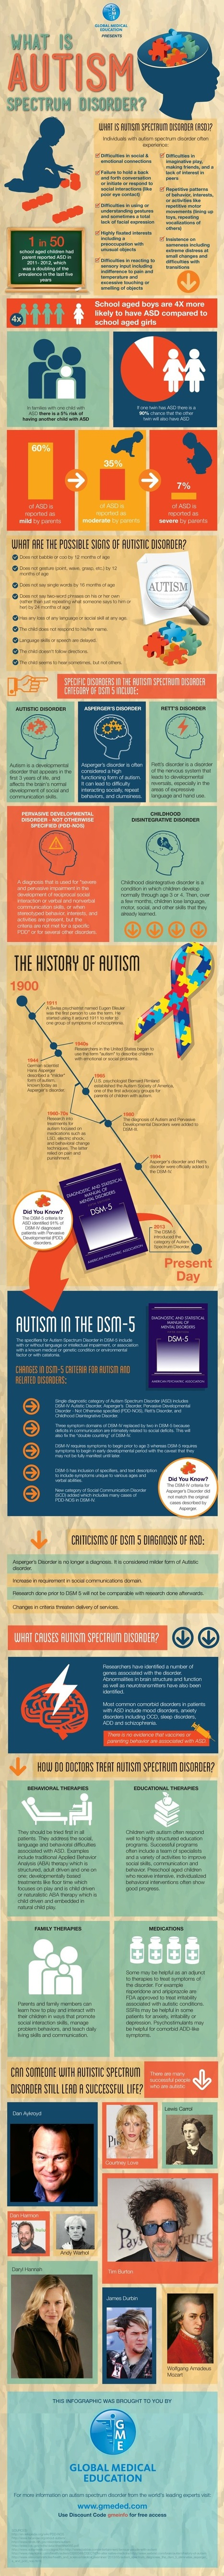 What Is Autism?   Global Medical Education   Of human kindness   Scoop.it